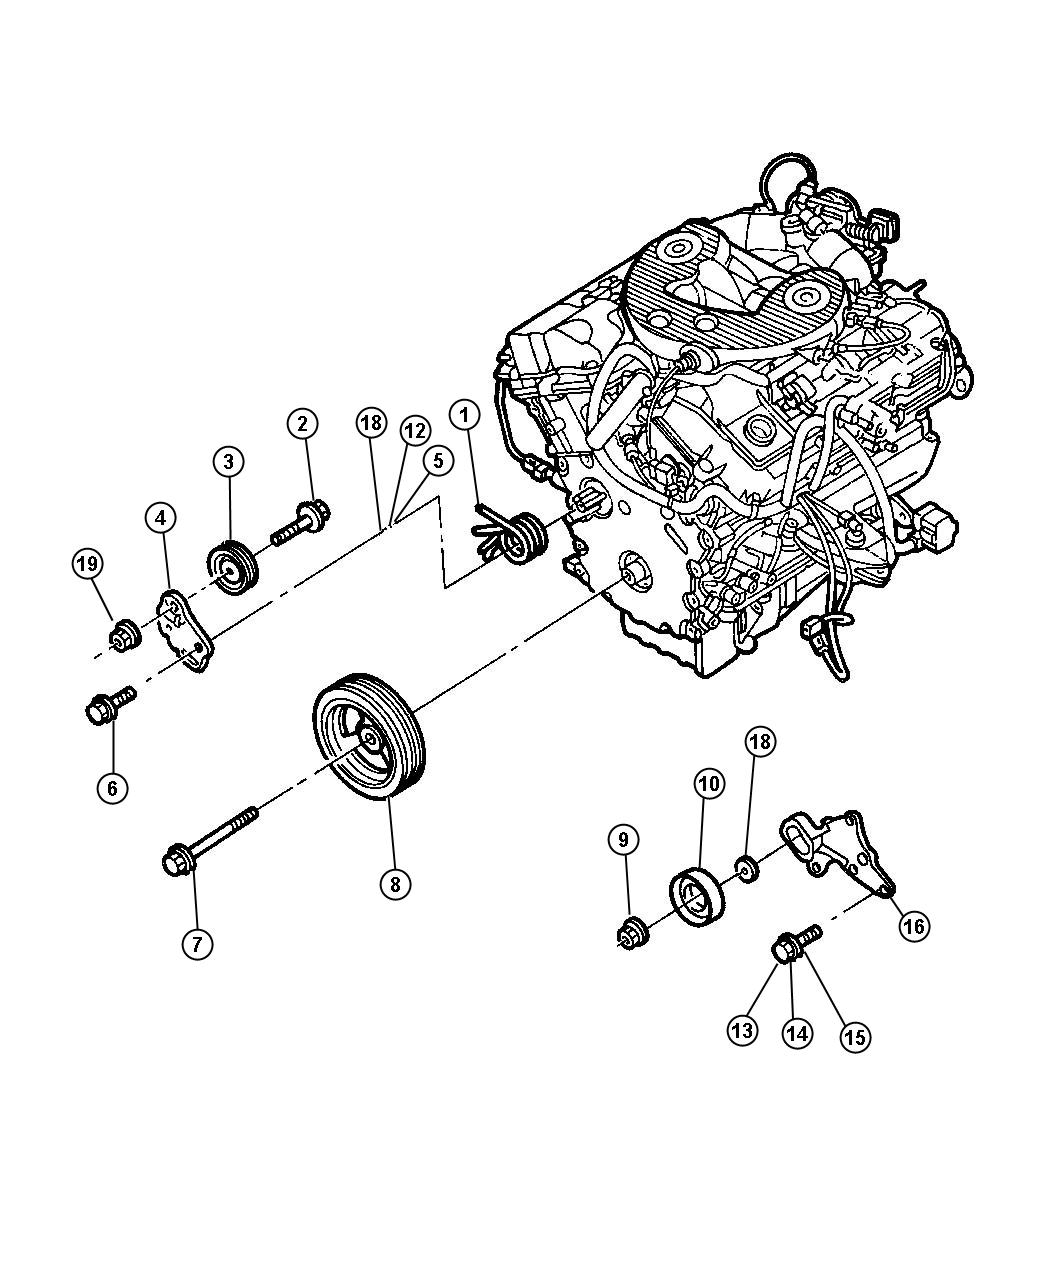 Nissan Xterra Service Manual Auto Repair